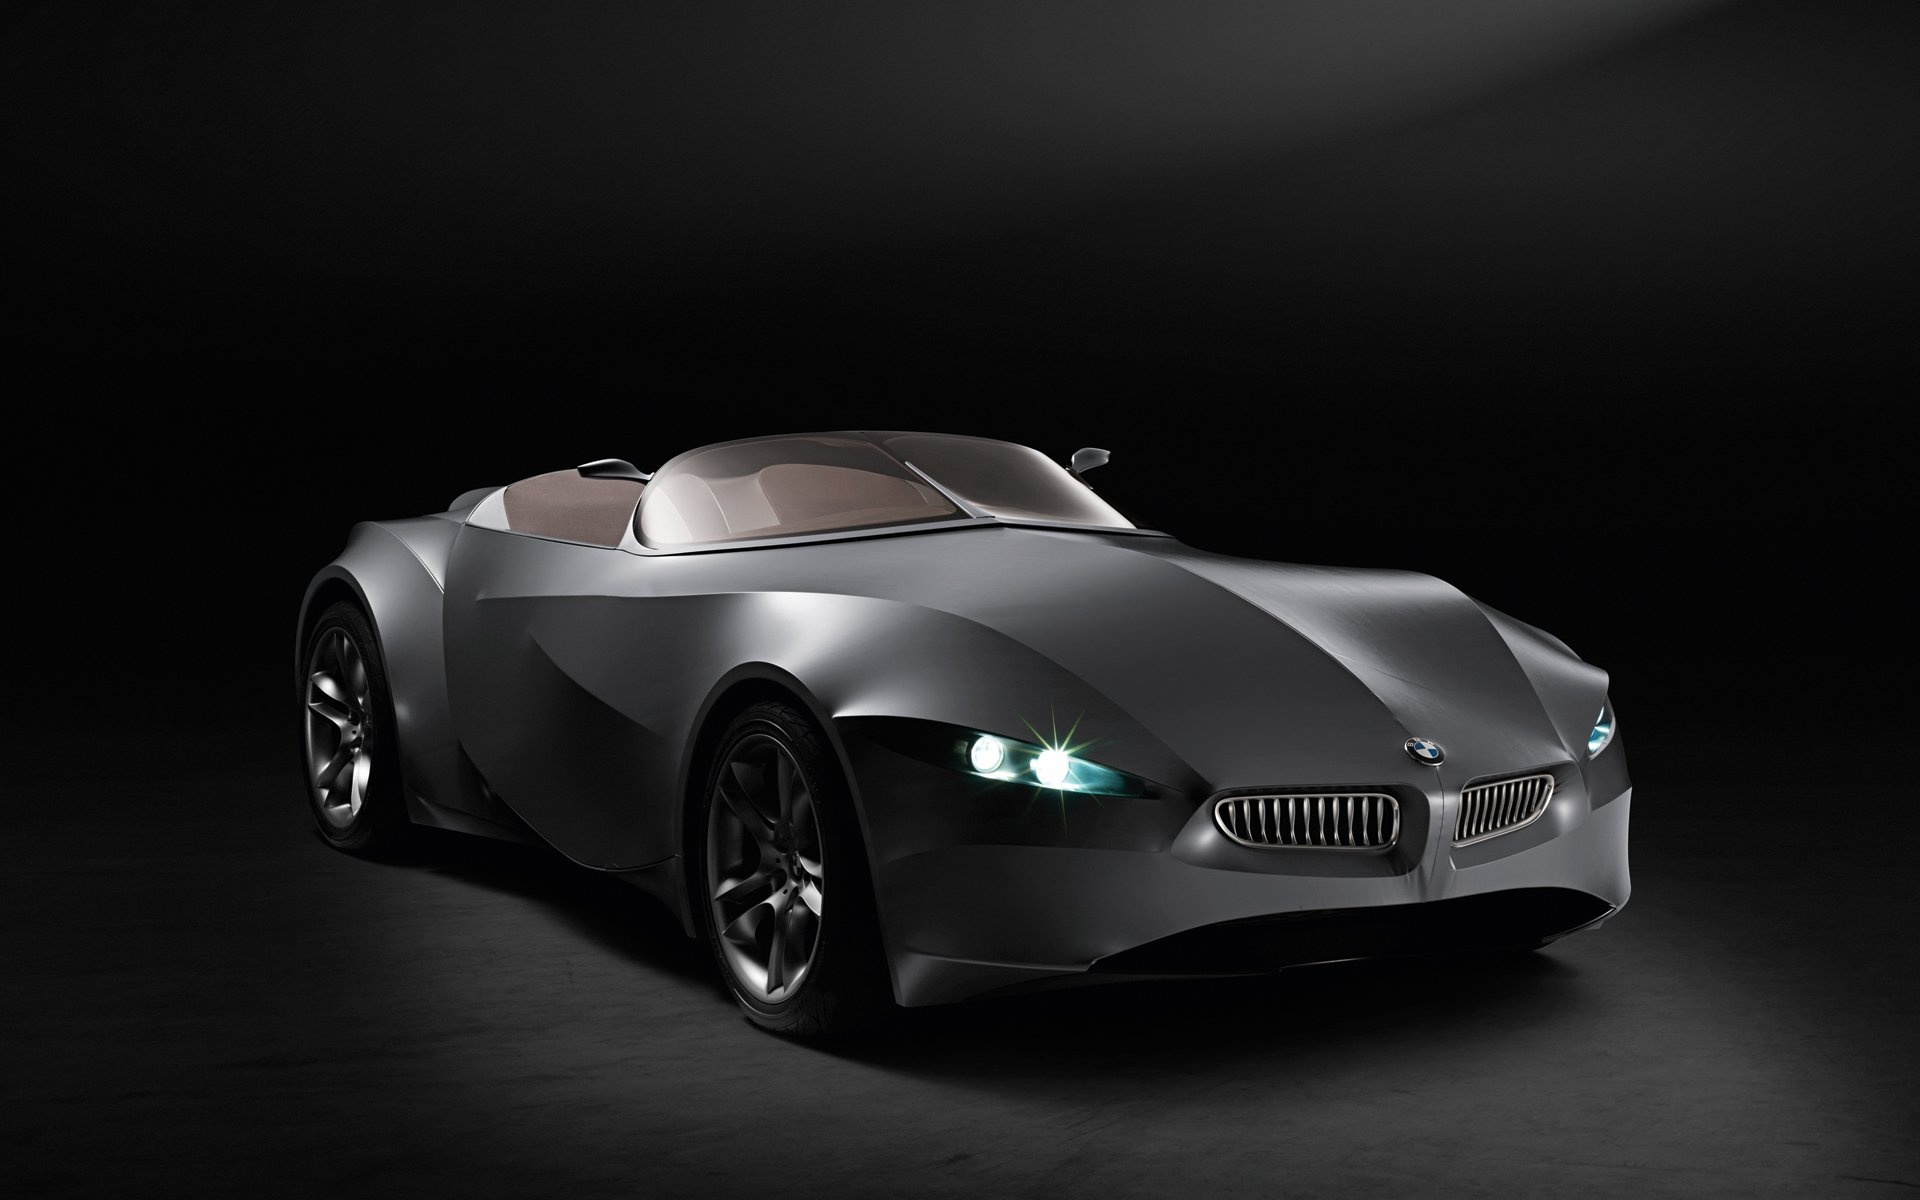 BMW Prototype Concept Car Wallpapers In Jpg Format For Free Download